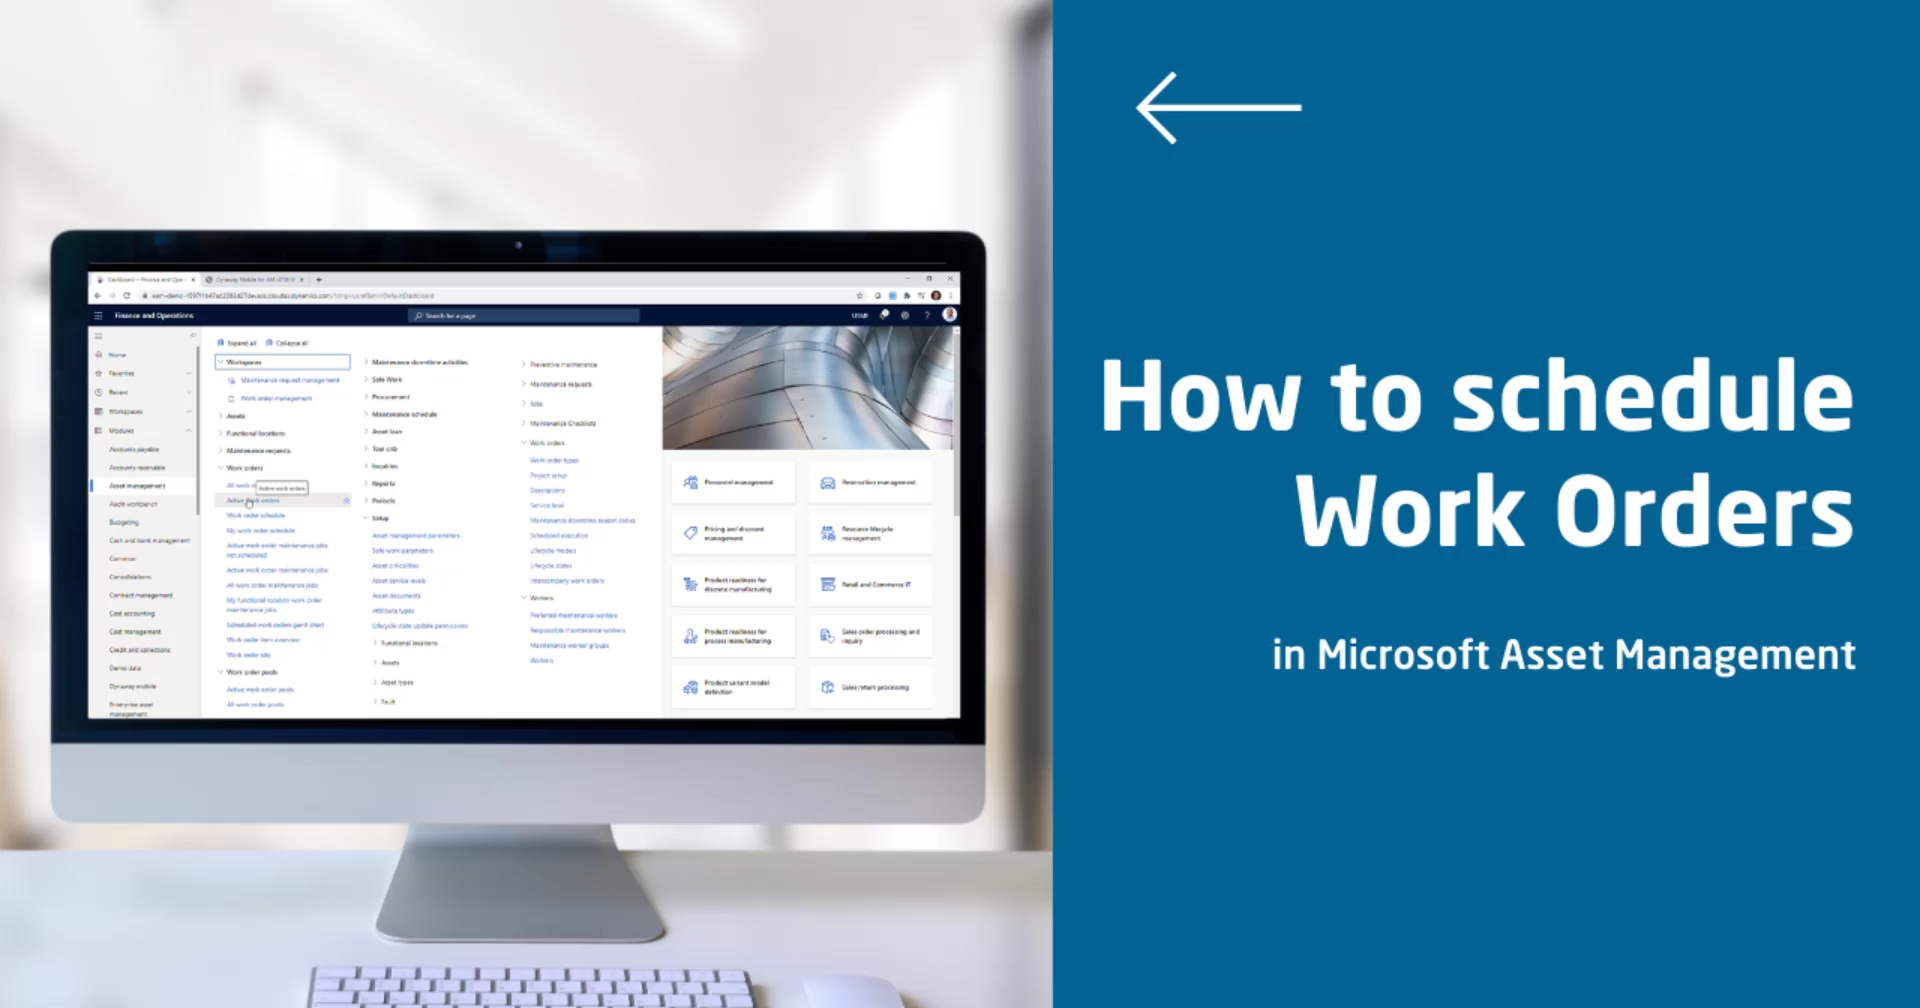 How to schedule Work Order in MS AM